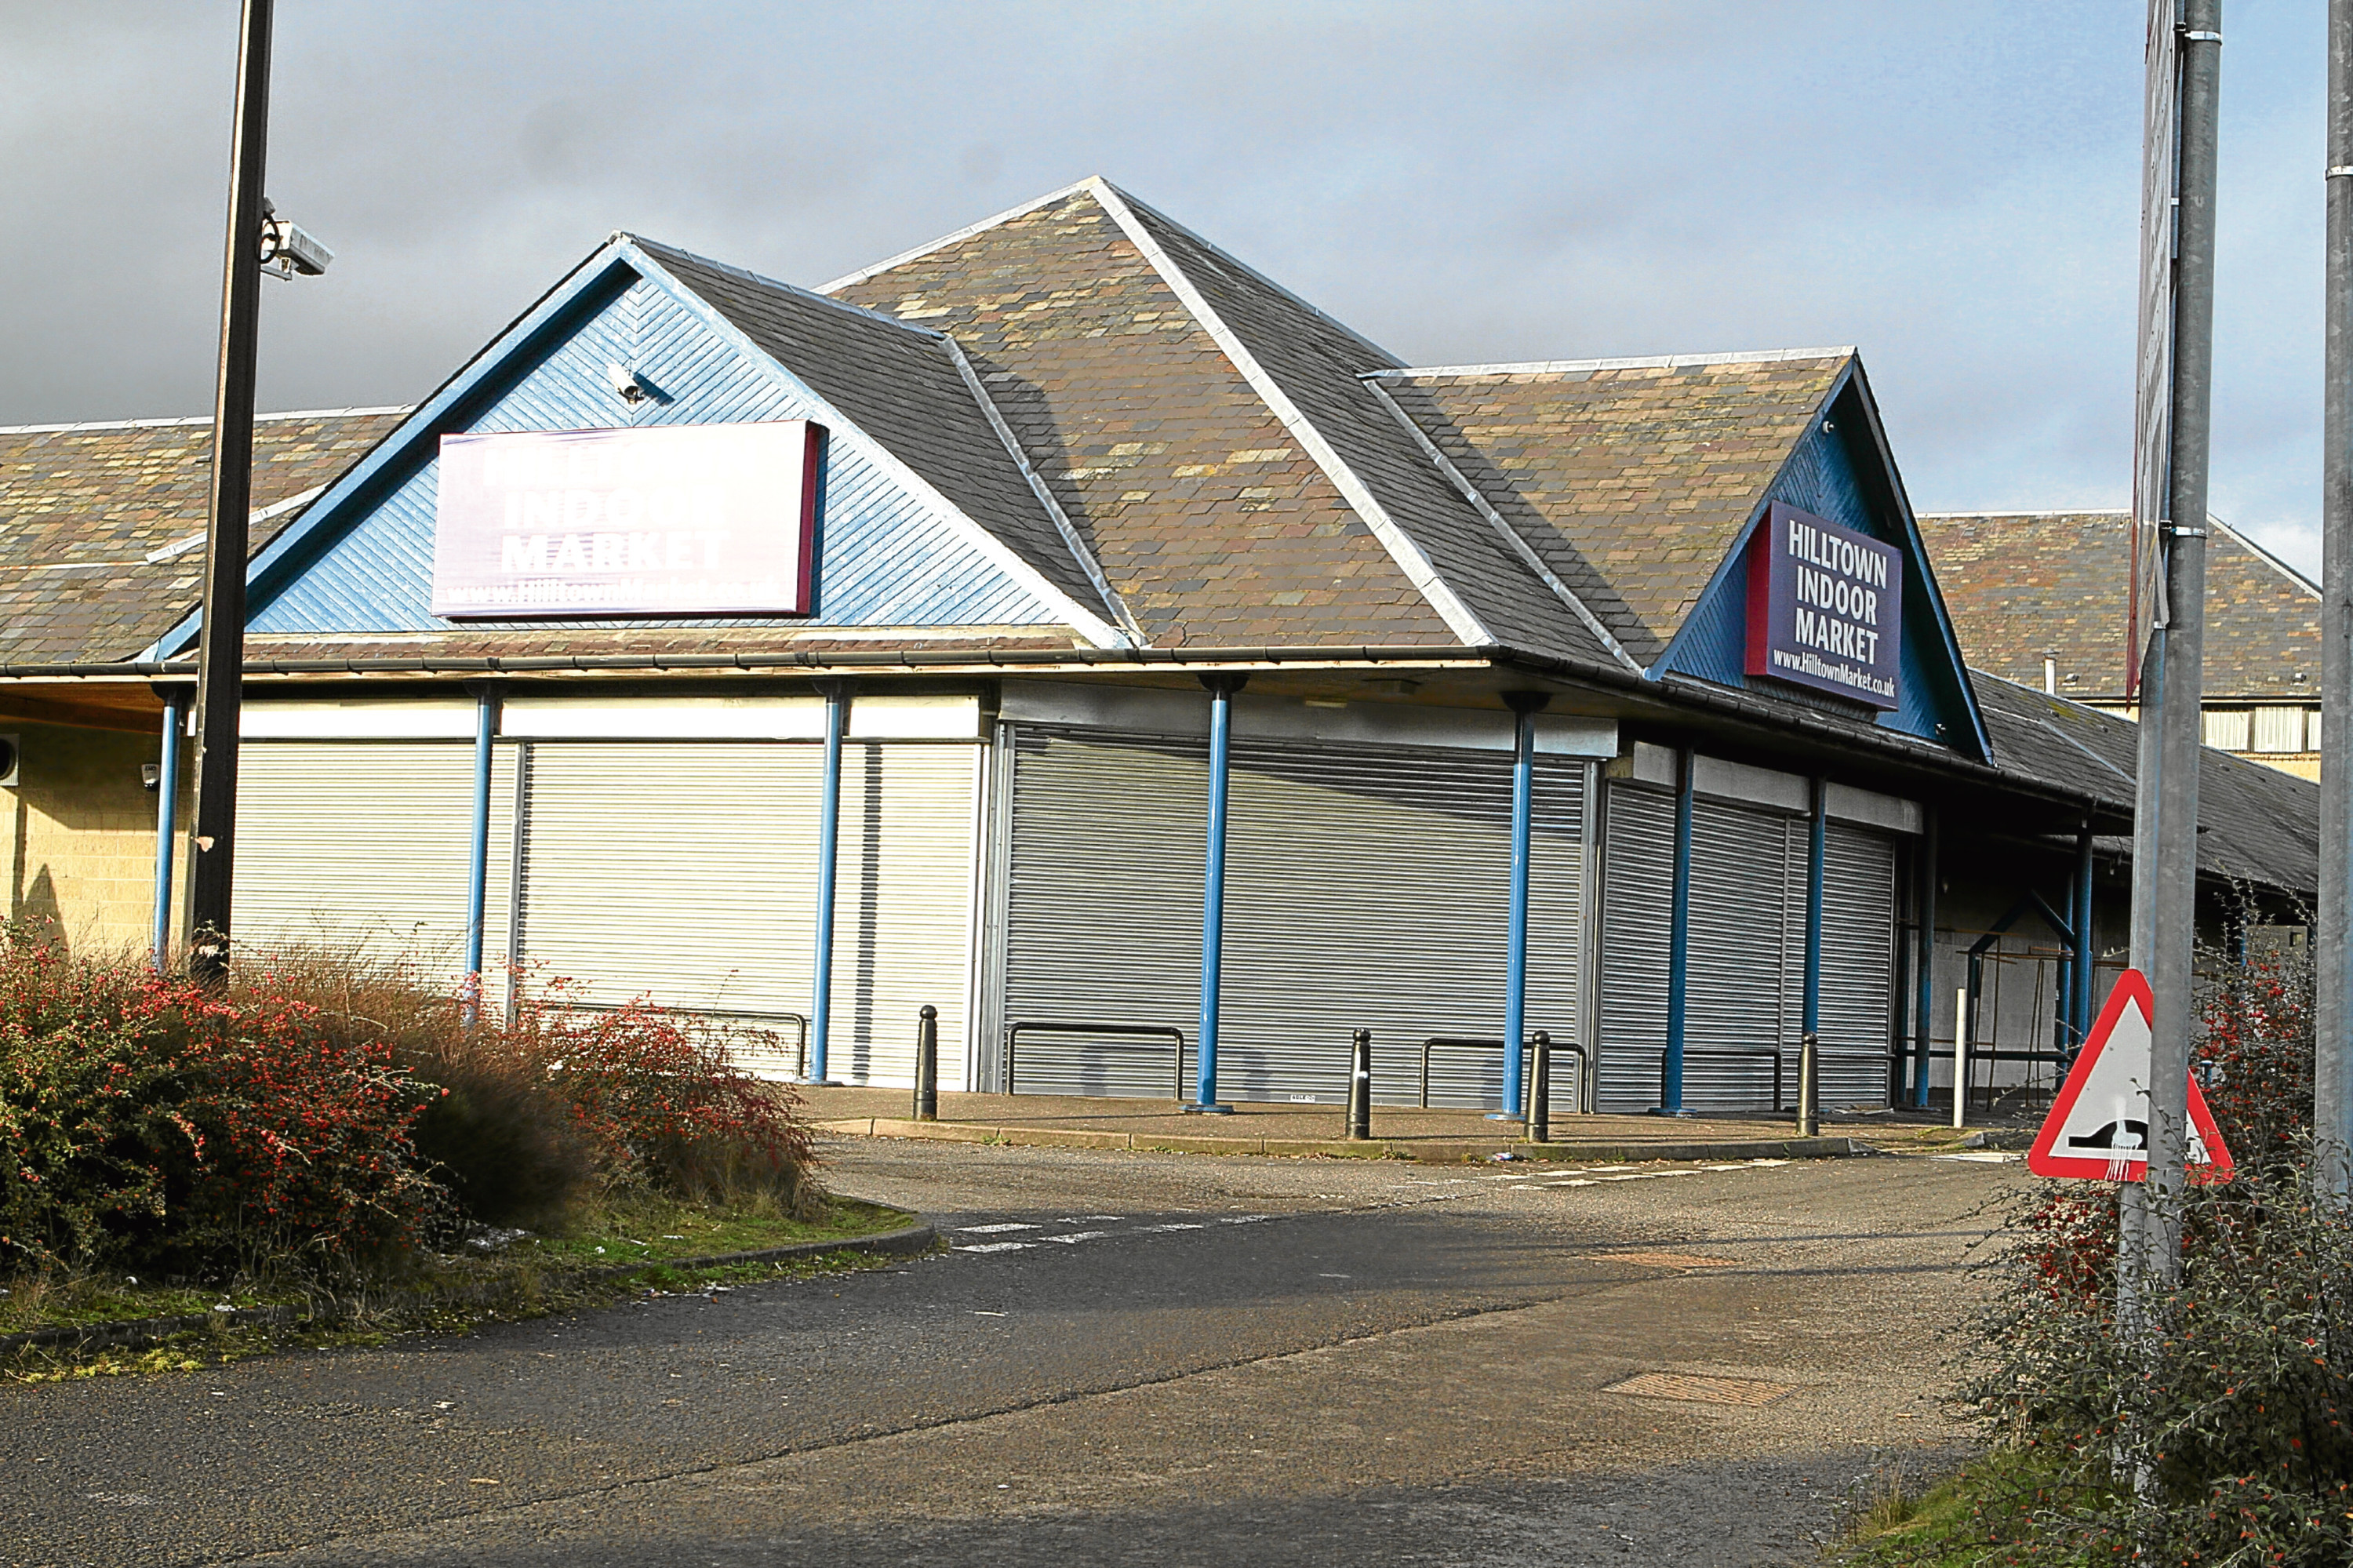 Hilltown Indoor Market has been shut in recent months.